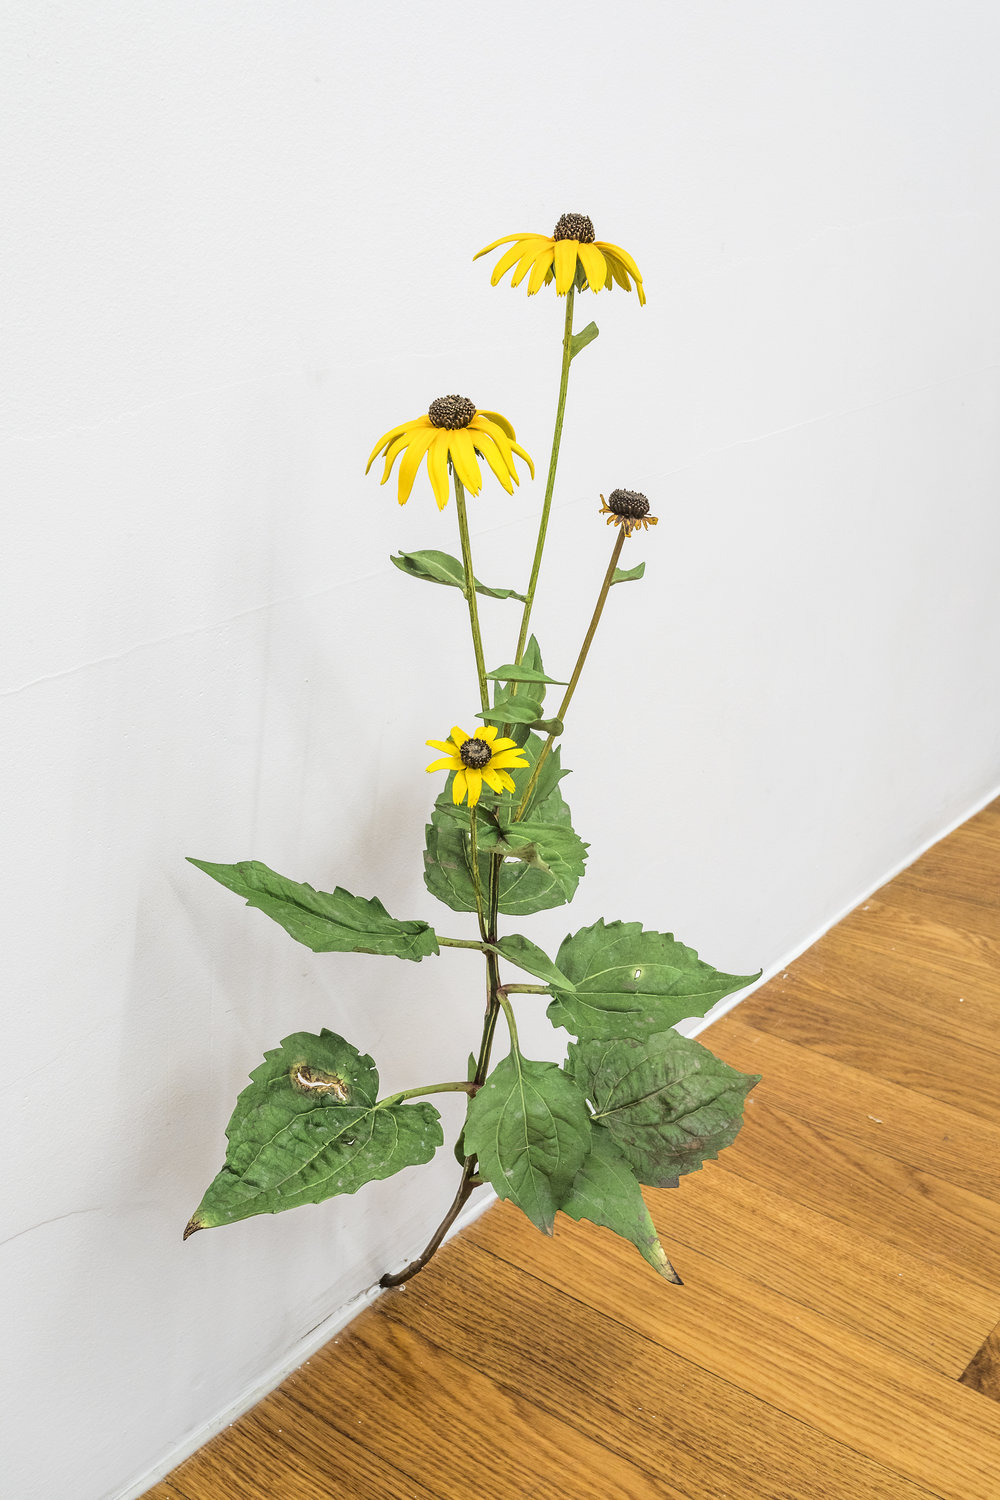 Tony Matelli  Weed #431  2018 Painted bronze 23 1/4 x 13 x 9 inches